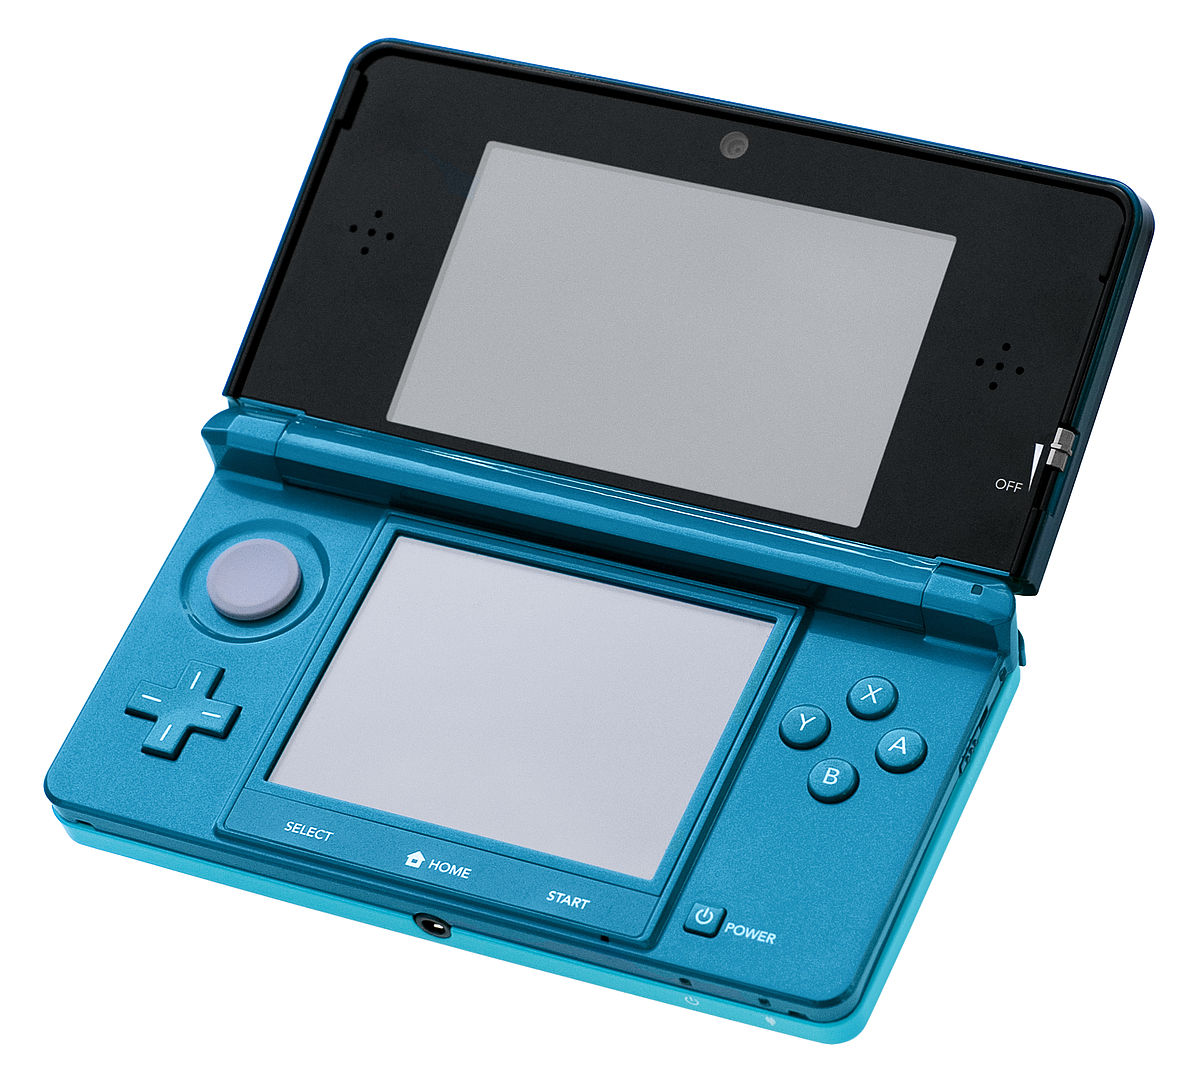 List Of Best Selling Nintendo 3ds Video Games Wikipedia